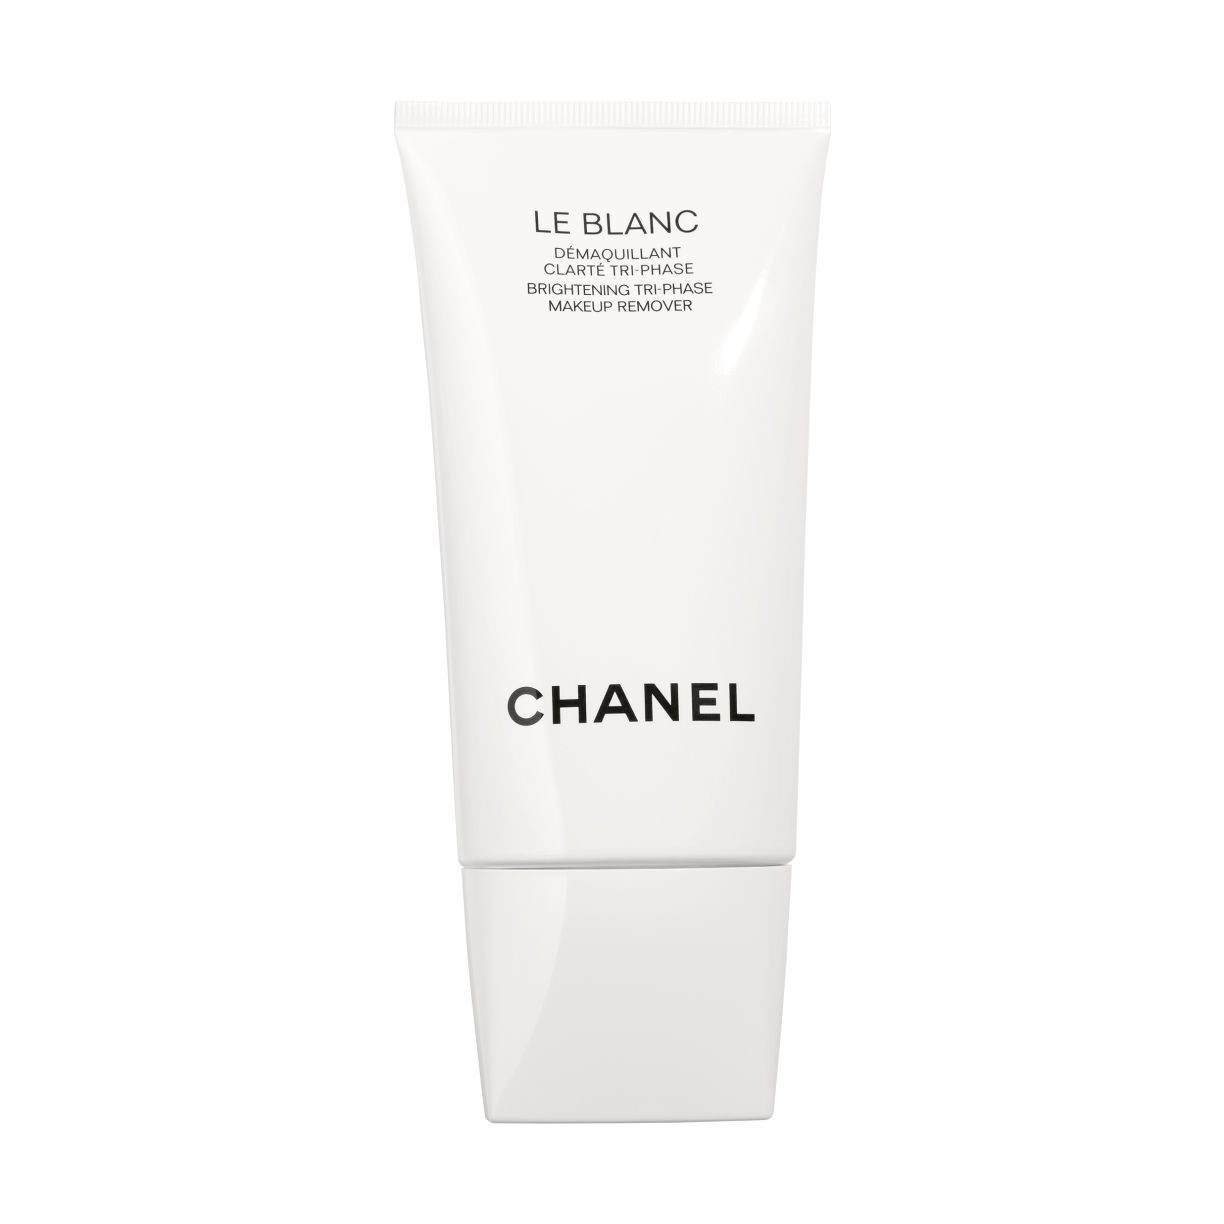 LE BLANC BRIGHTENING TRI-PHASE MAKEUP REMOVER